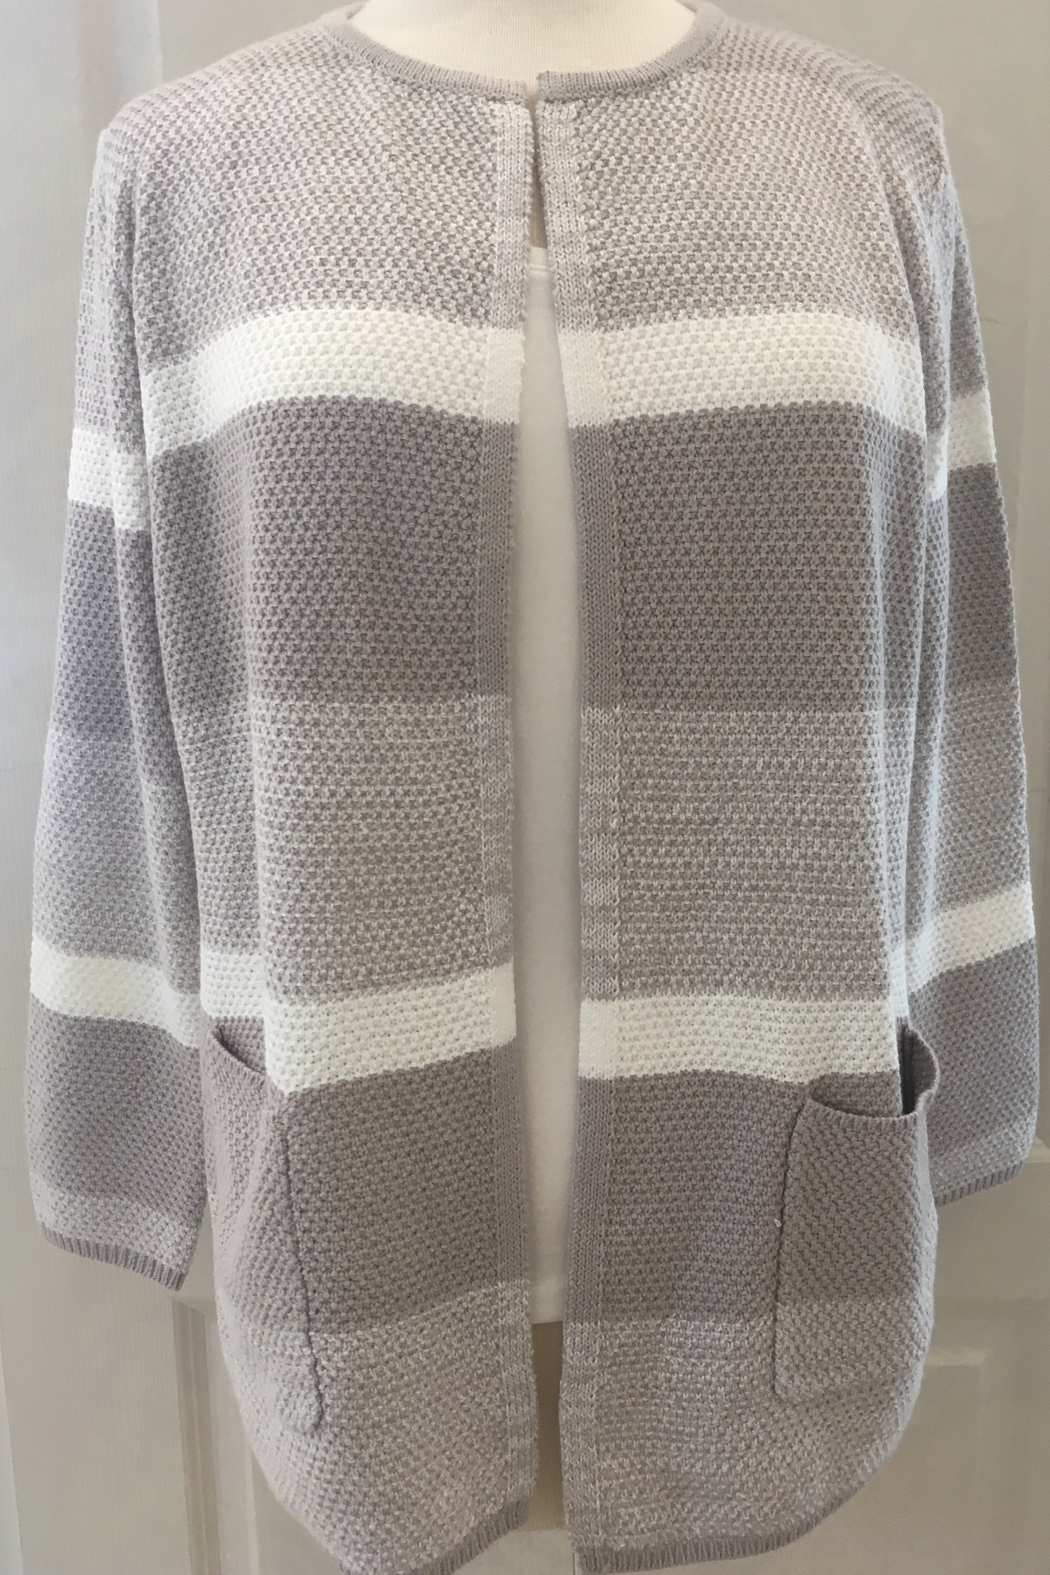 Marble Beige and cream cardigan sweater - Main Image